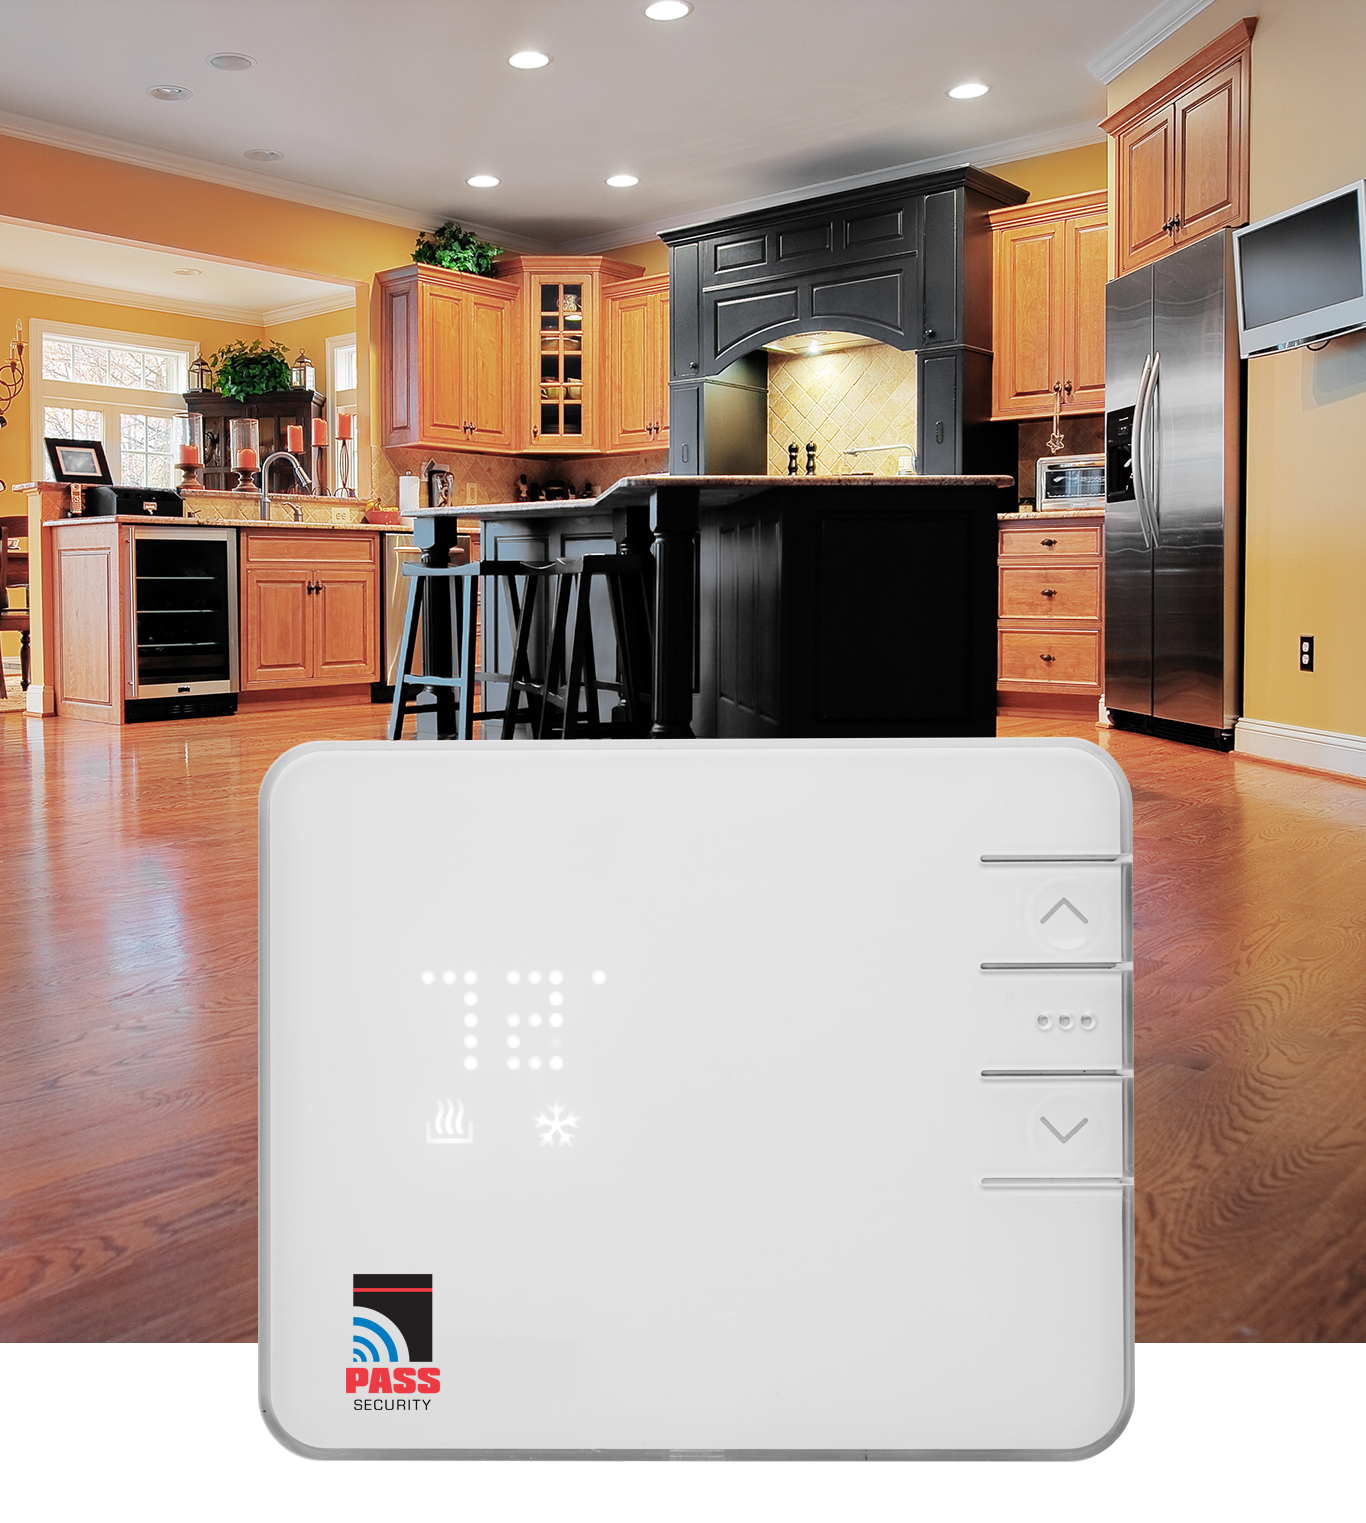 Automated smart thermostat